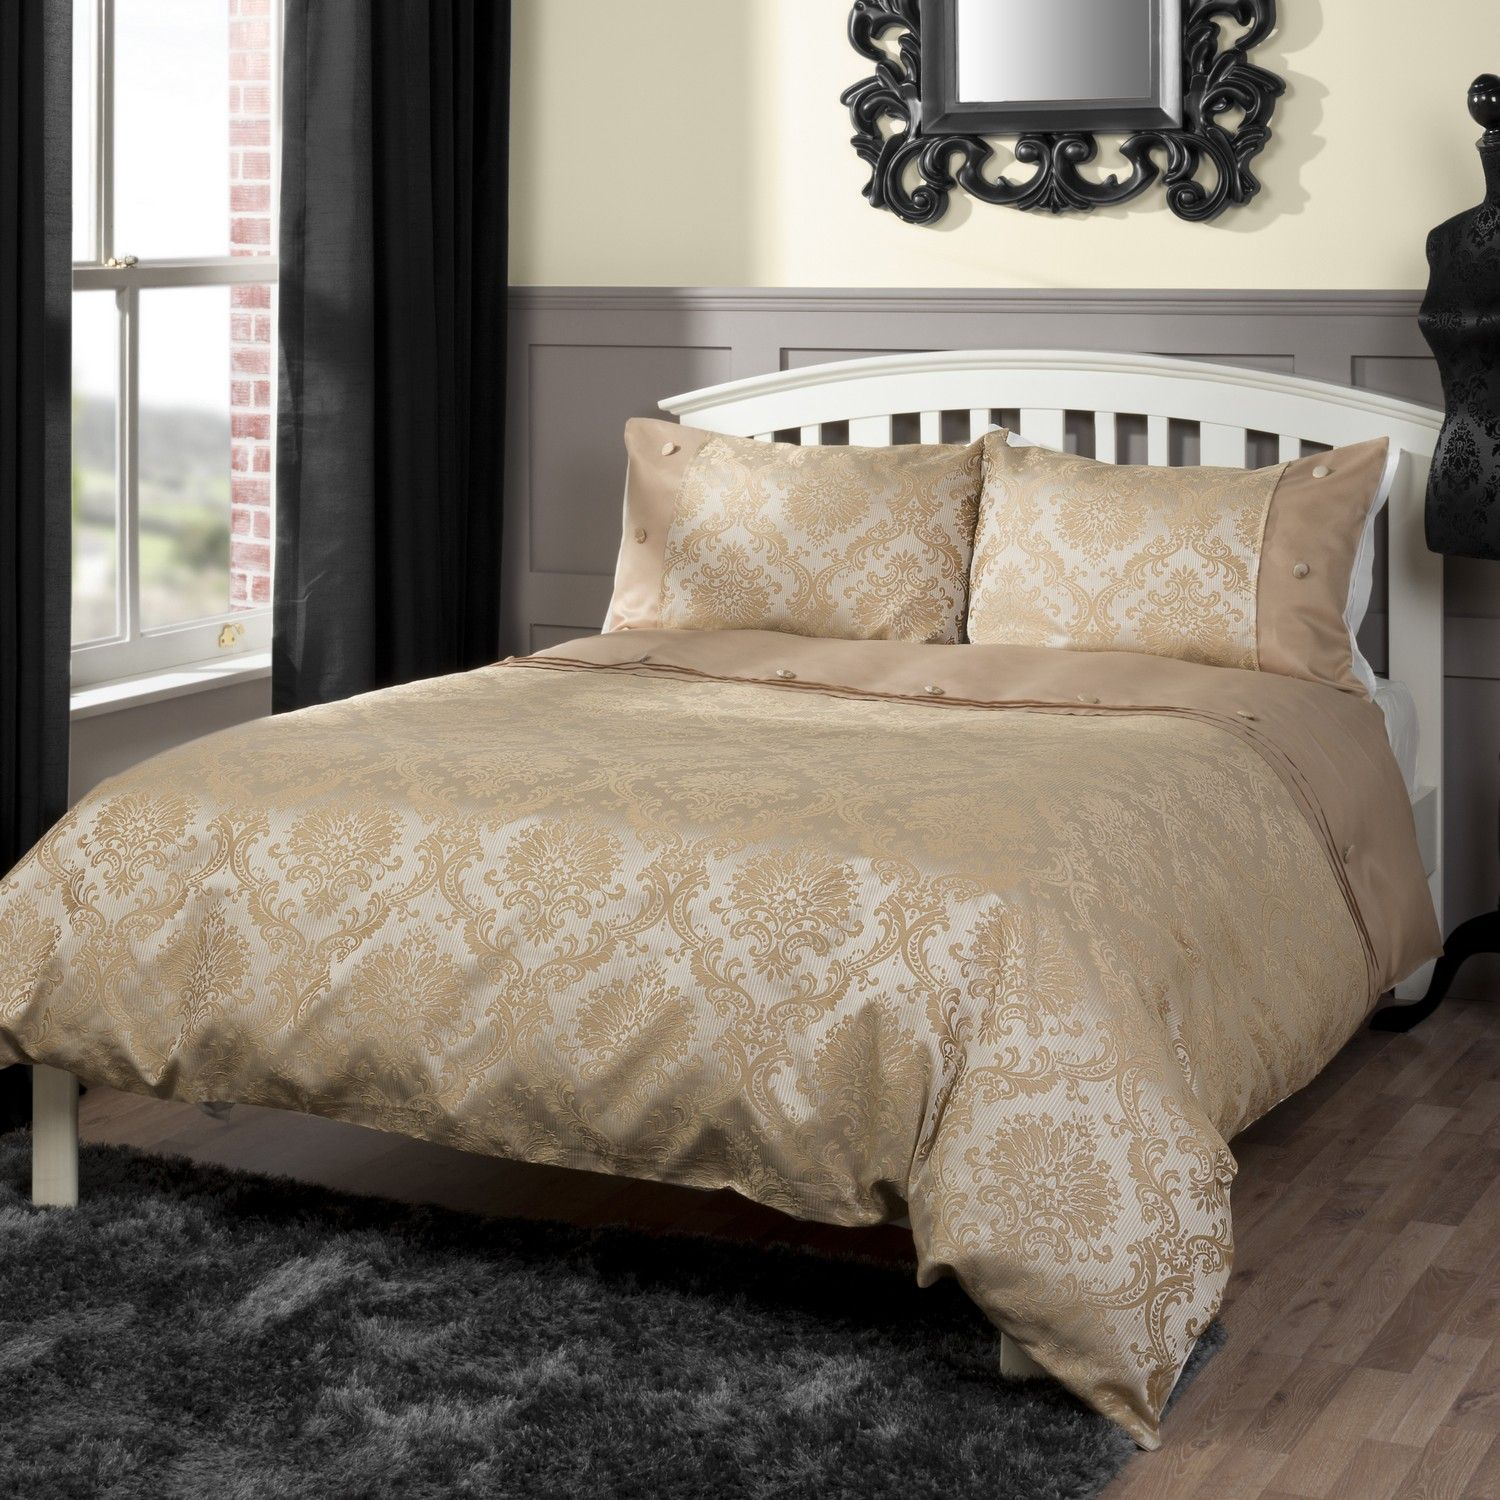 Chadwick Gold Bedding Matching Cushions Available Bedroom Luxury Egyptian Cotton Duvet Sets Uk